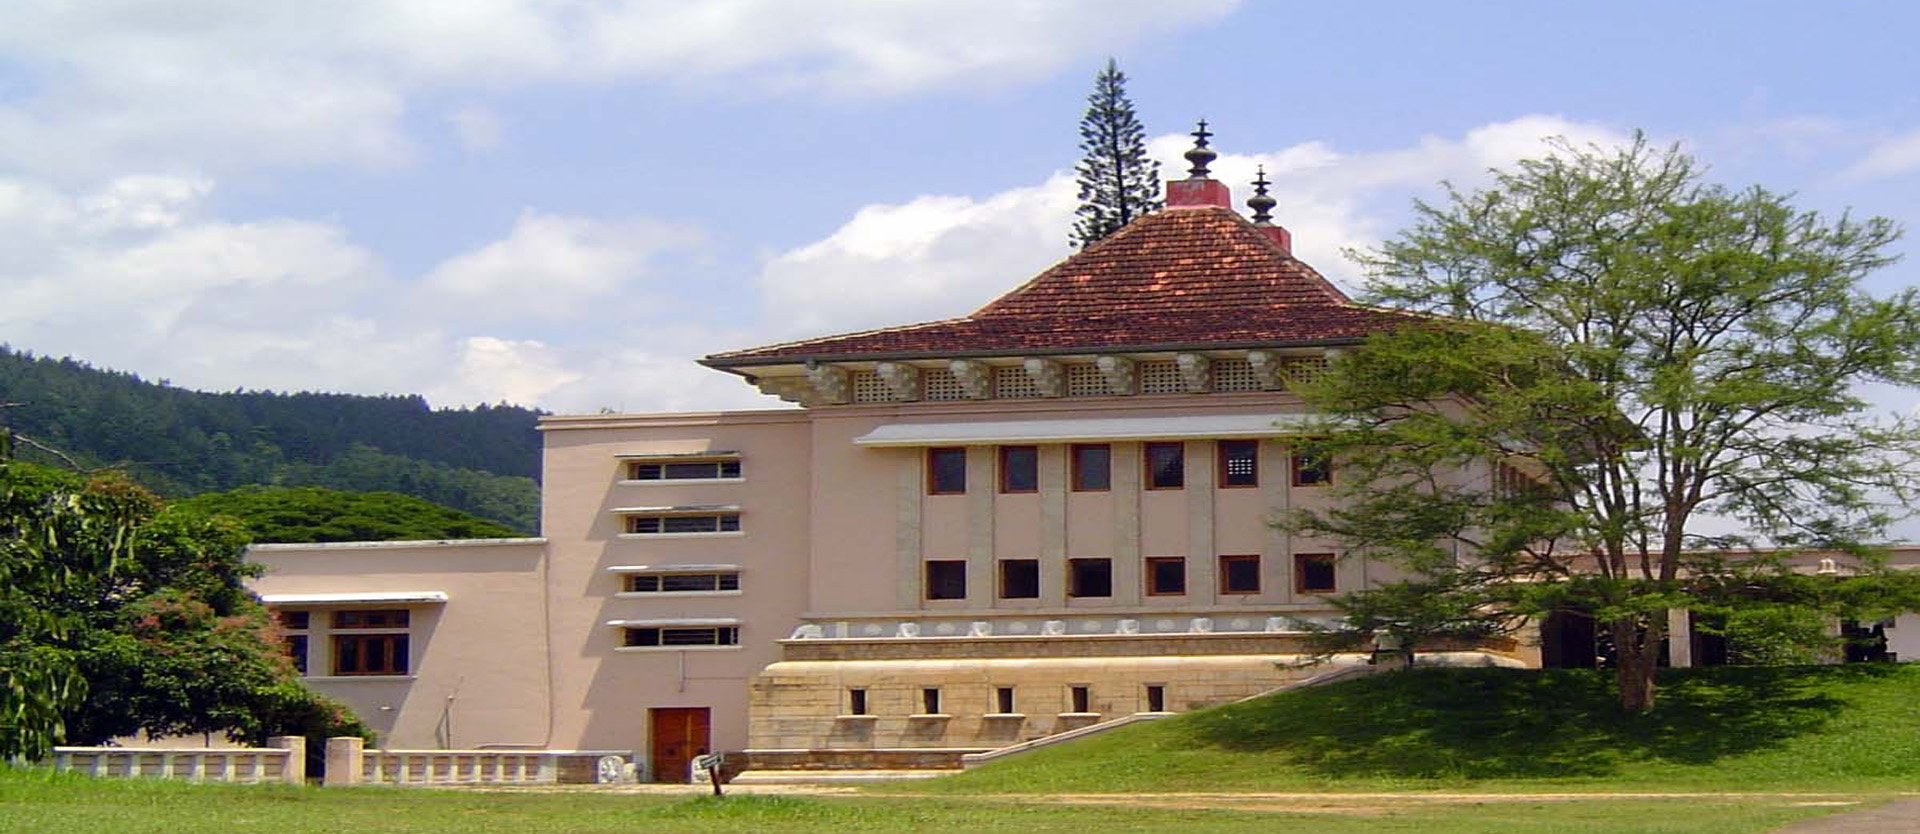 Faculty Of Arts University Of Peradeniya